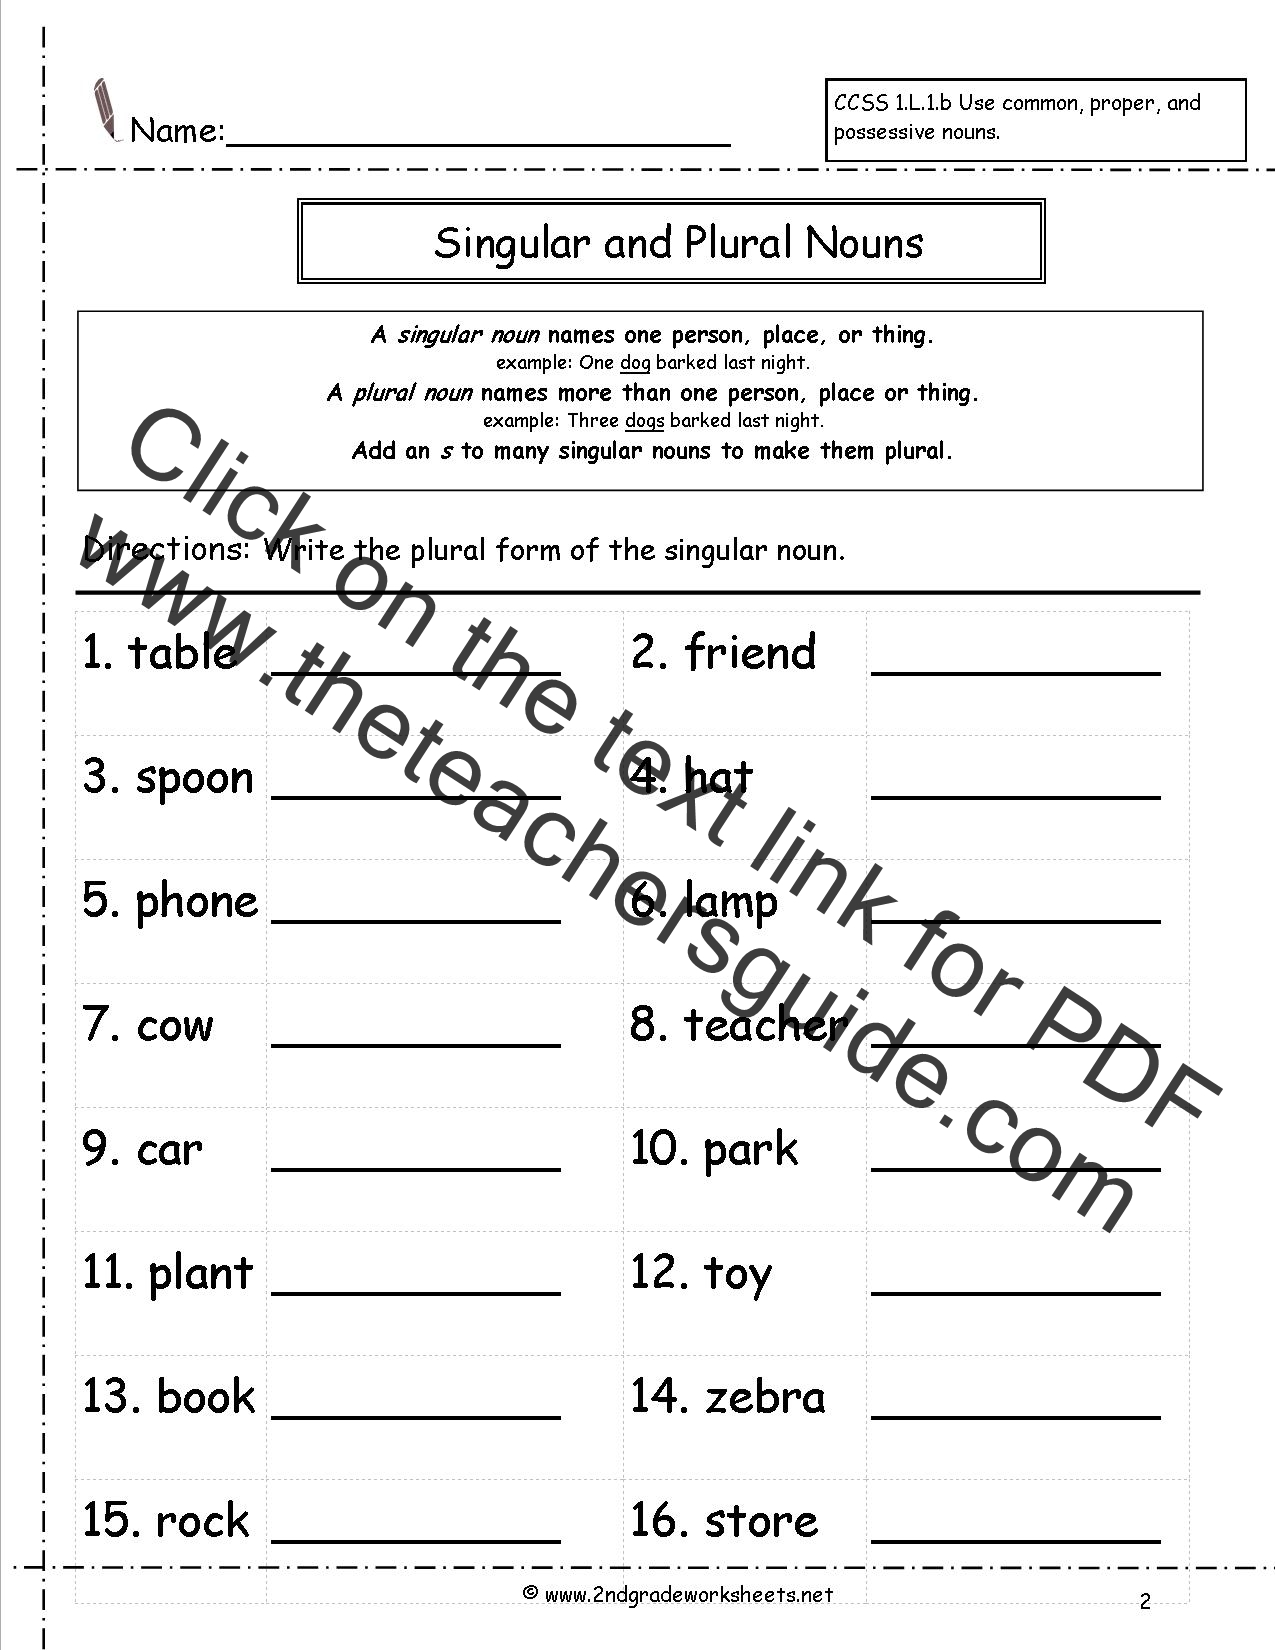 Singular and Plural Nouns Worksheets – Nouns Worksheets